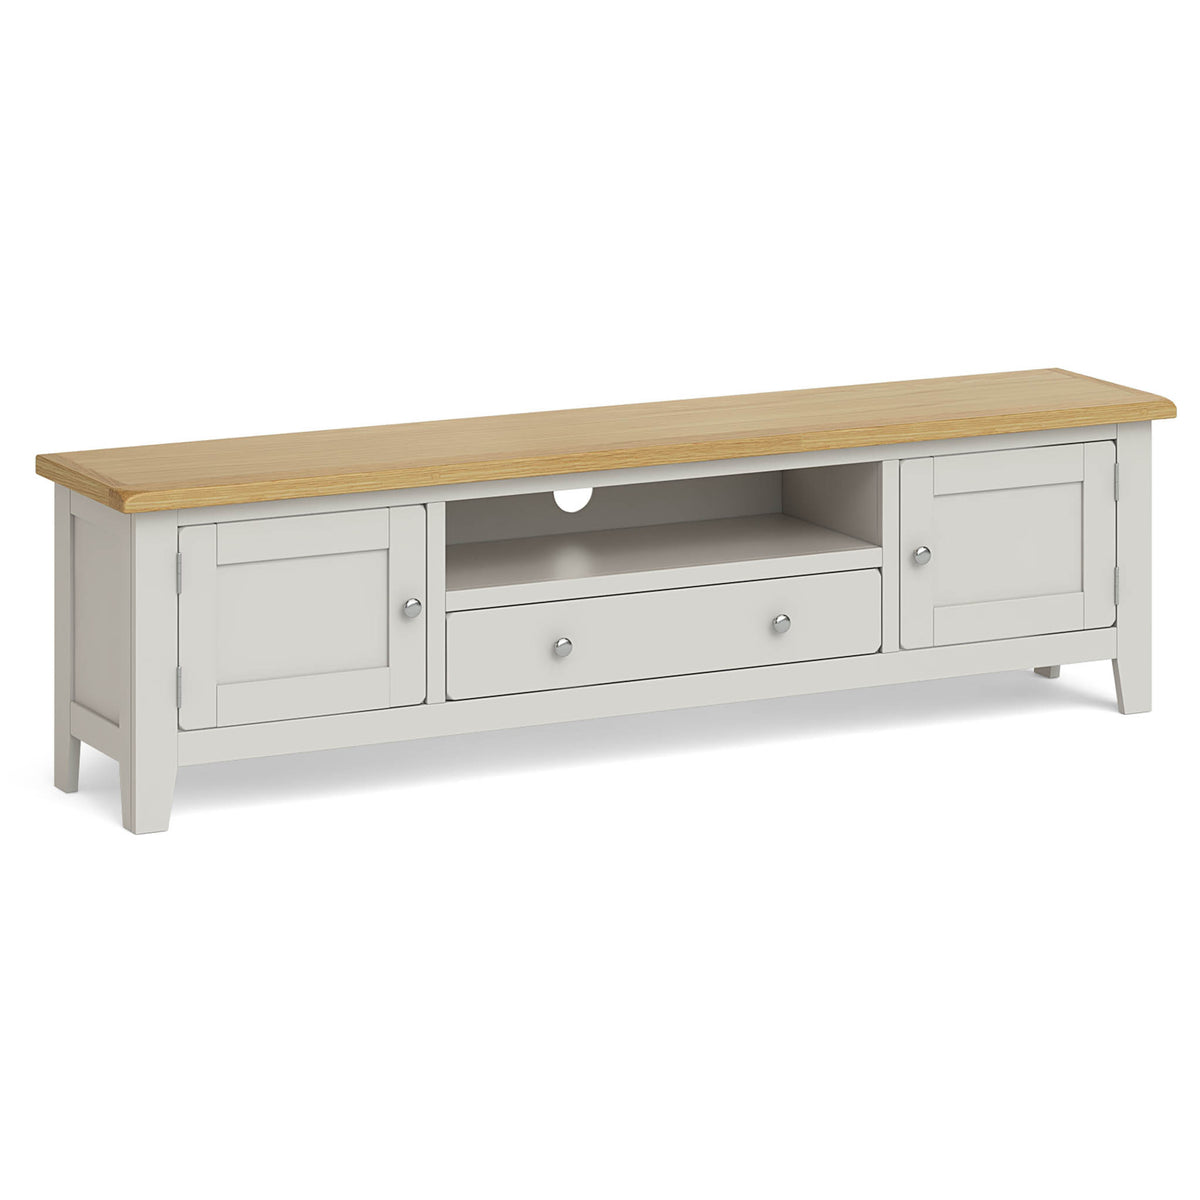 Lundy Grey Extra Large TV Stand by Roseland Furniture